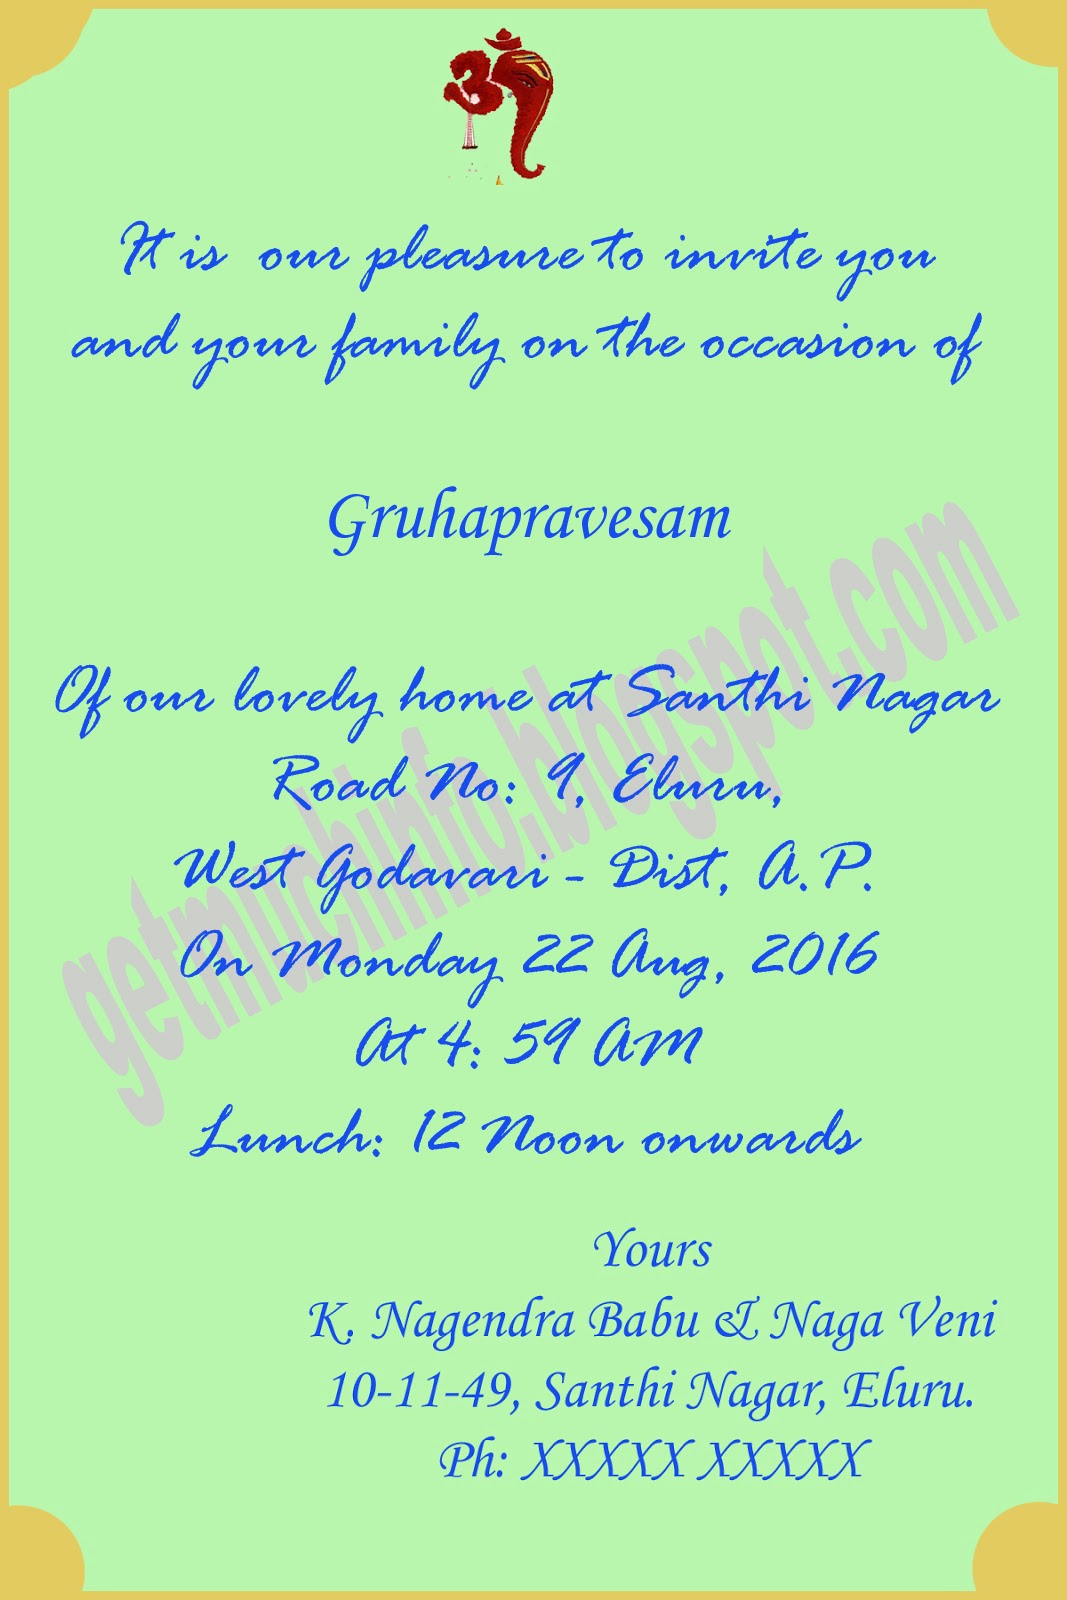 Gruhapravesam invitation wordings in english - Gruhapravesam gifts ideas ...